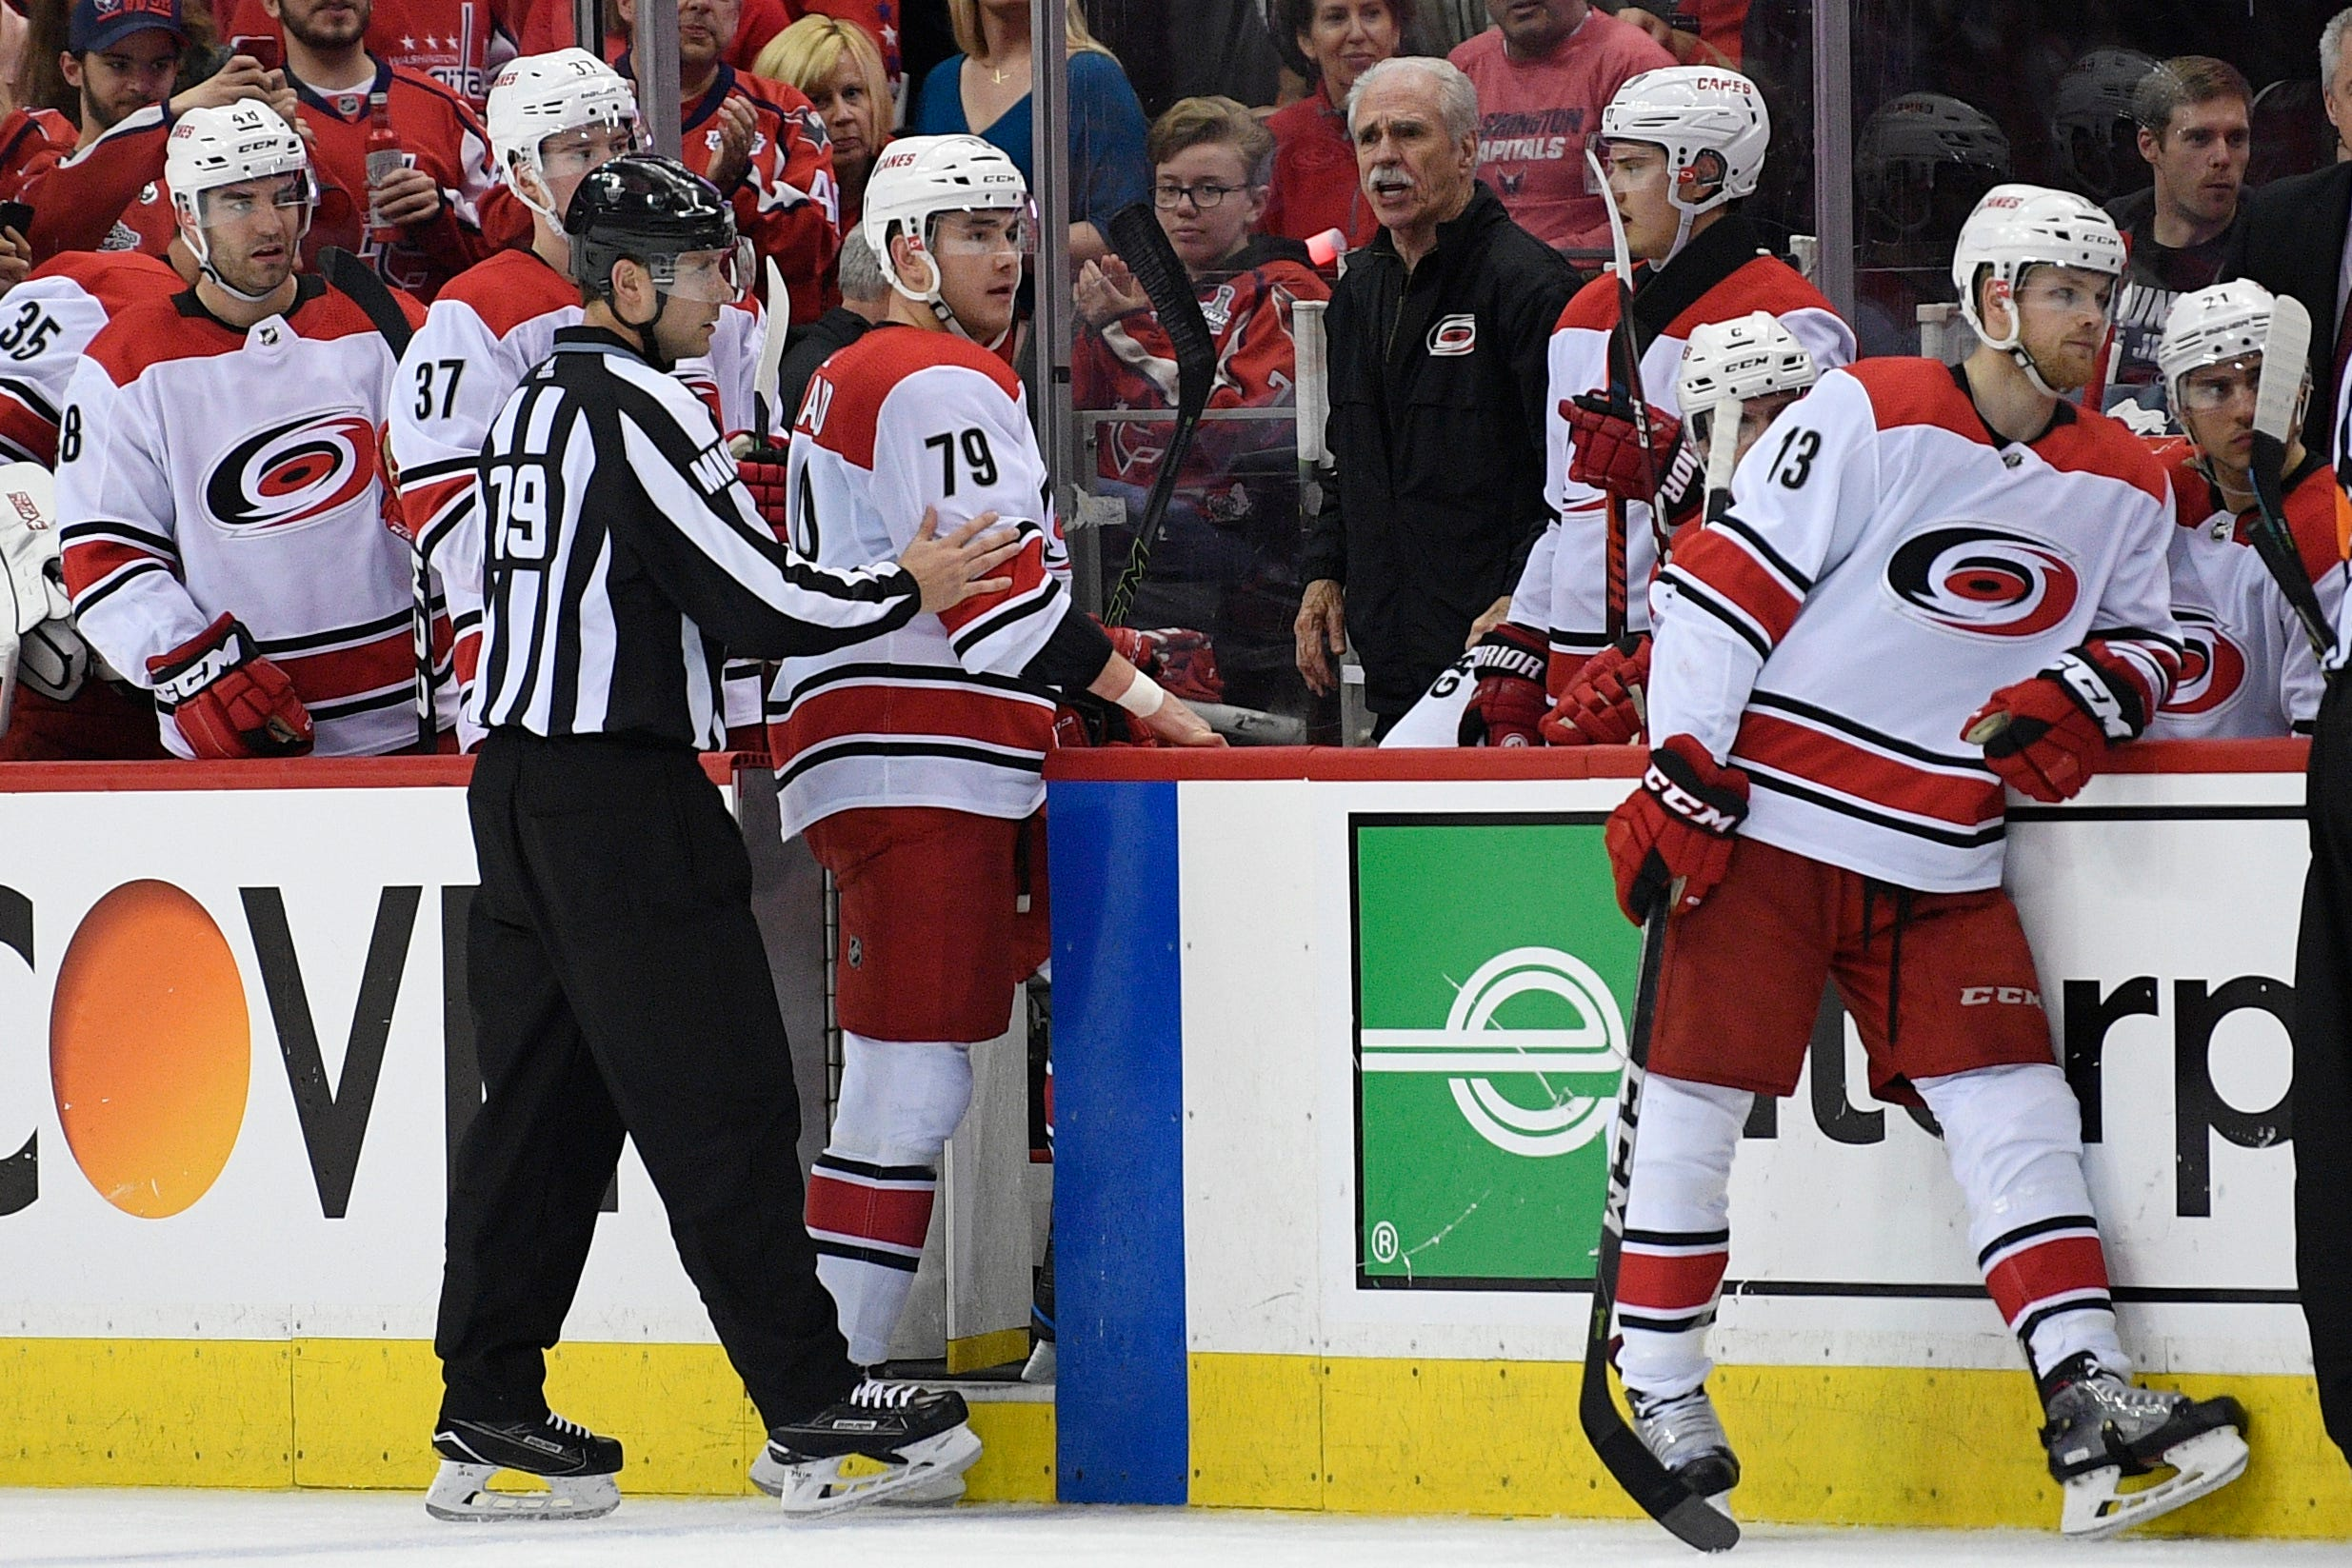 AP/CP survey: Players pan delay of game, goalie interference